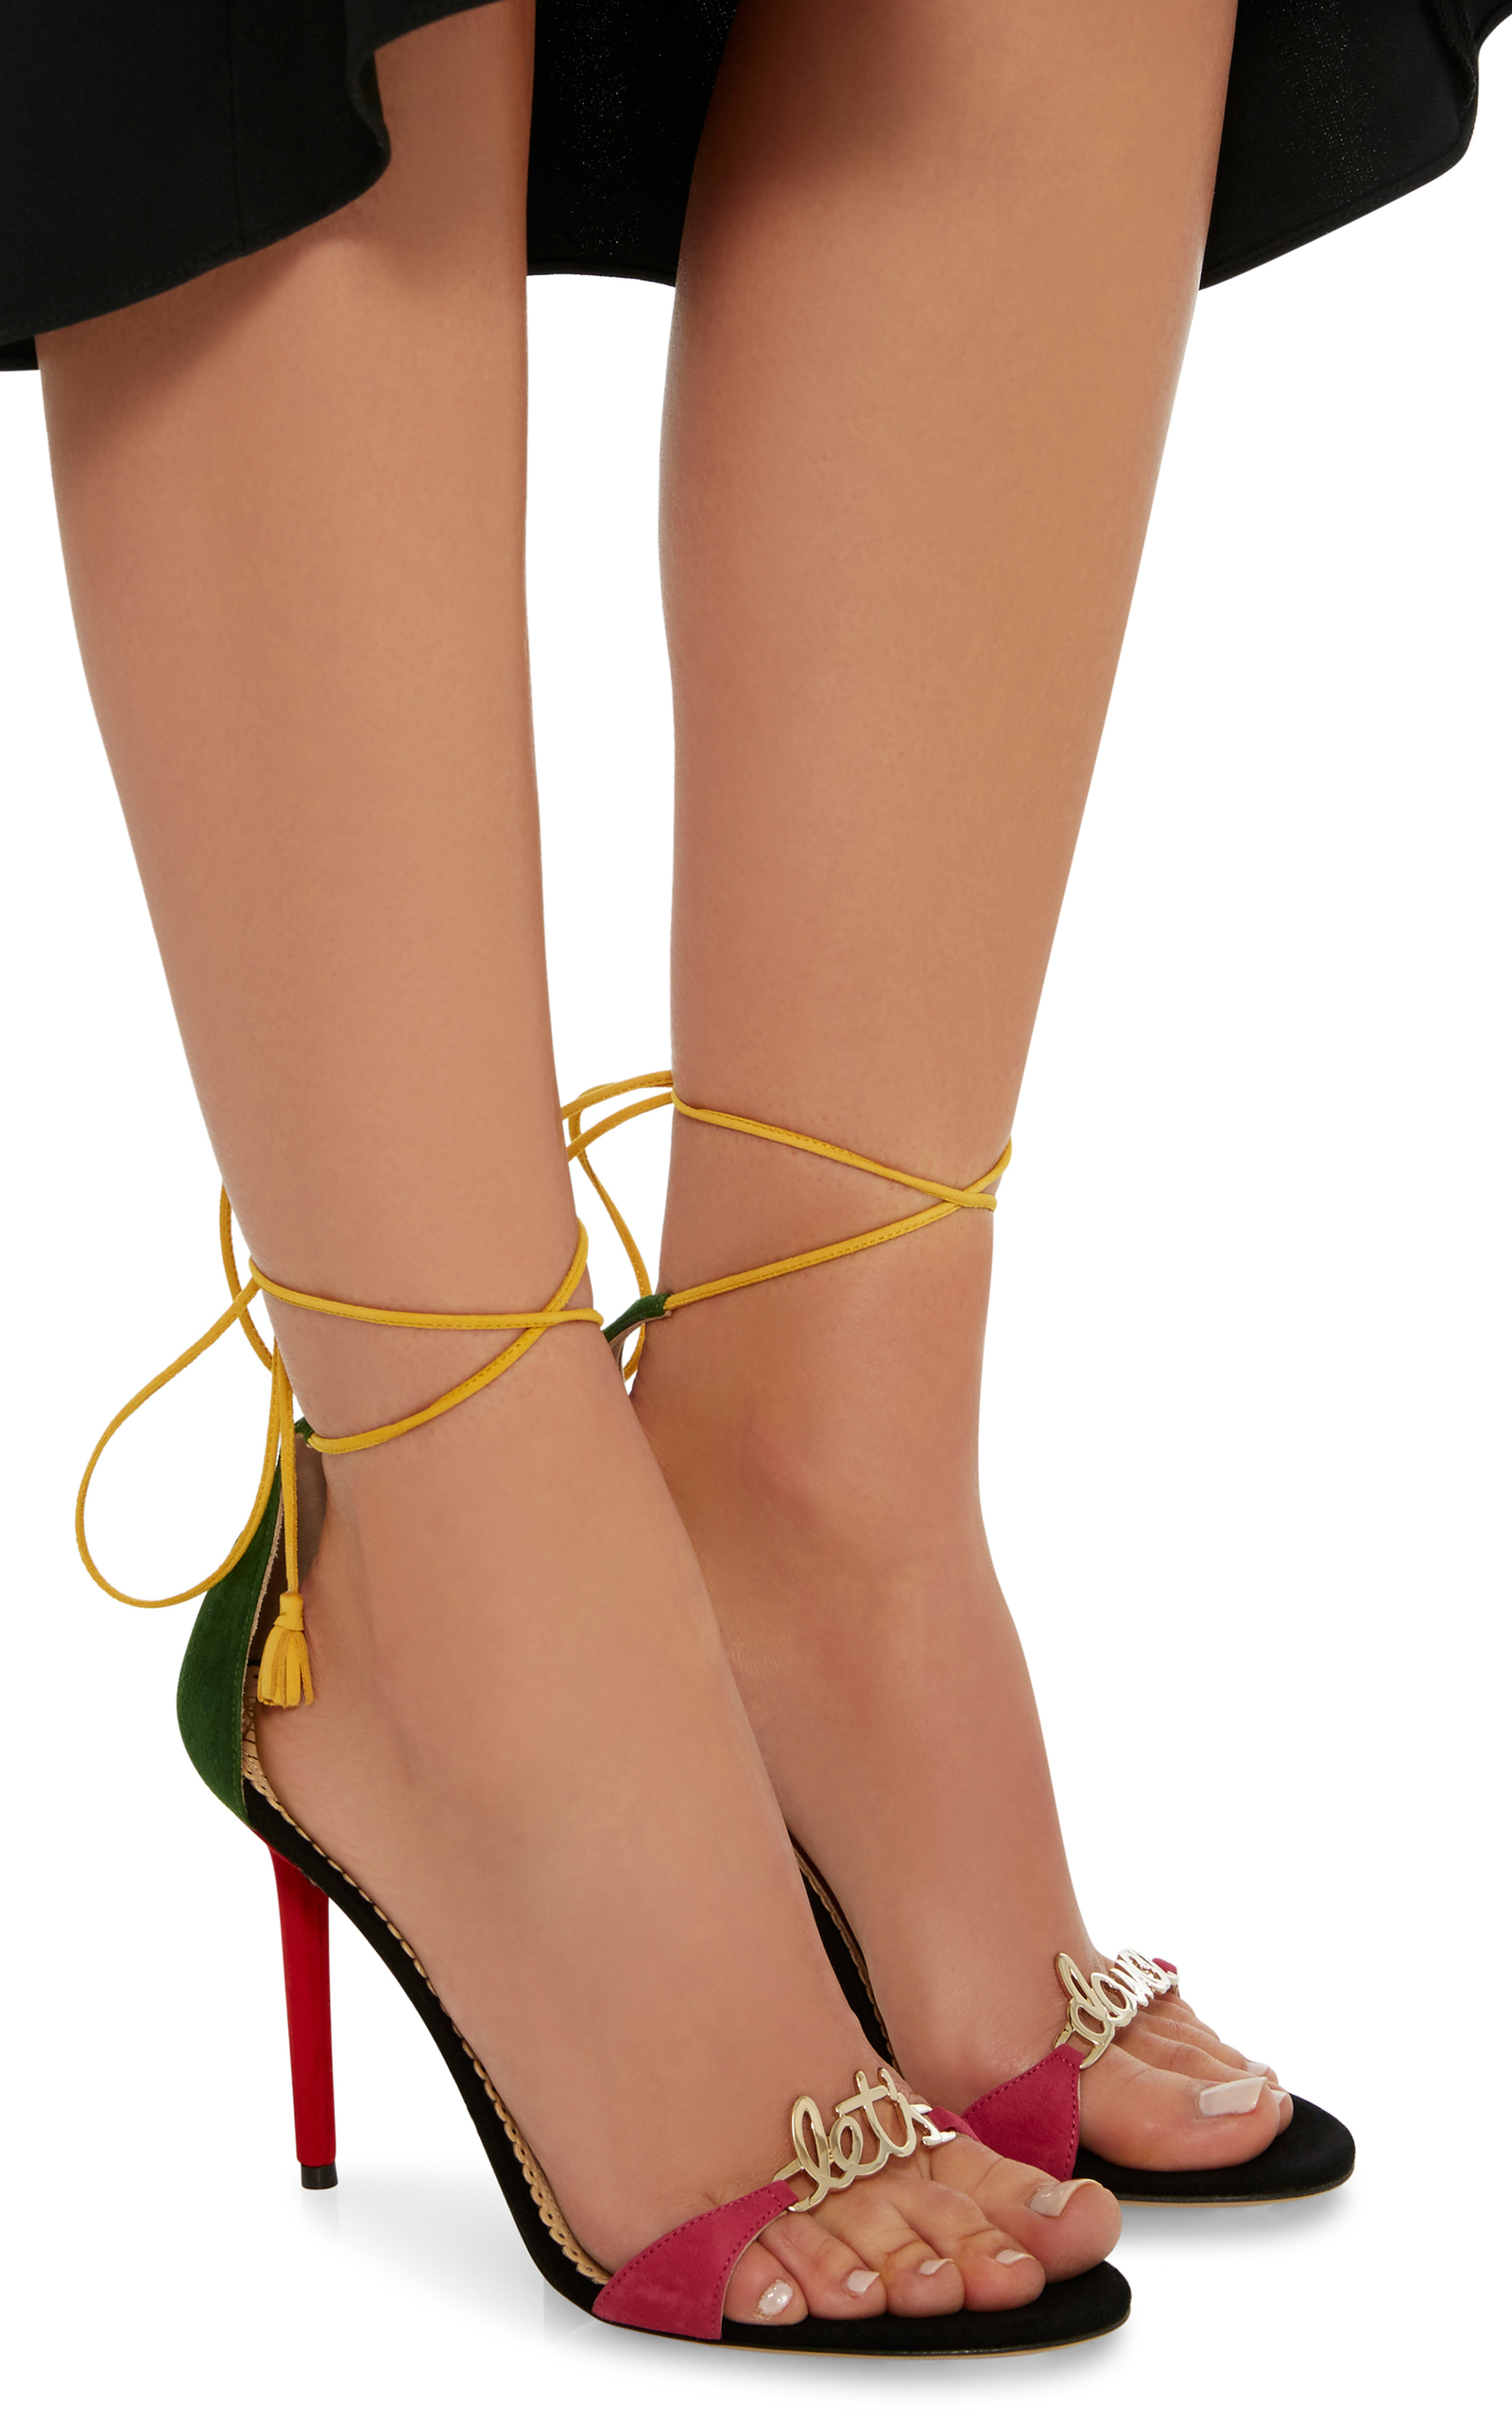 Olympia Let's Charlotte Charlotte Olympia Charlotte Dance Dance Let's cjq354ARSL